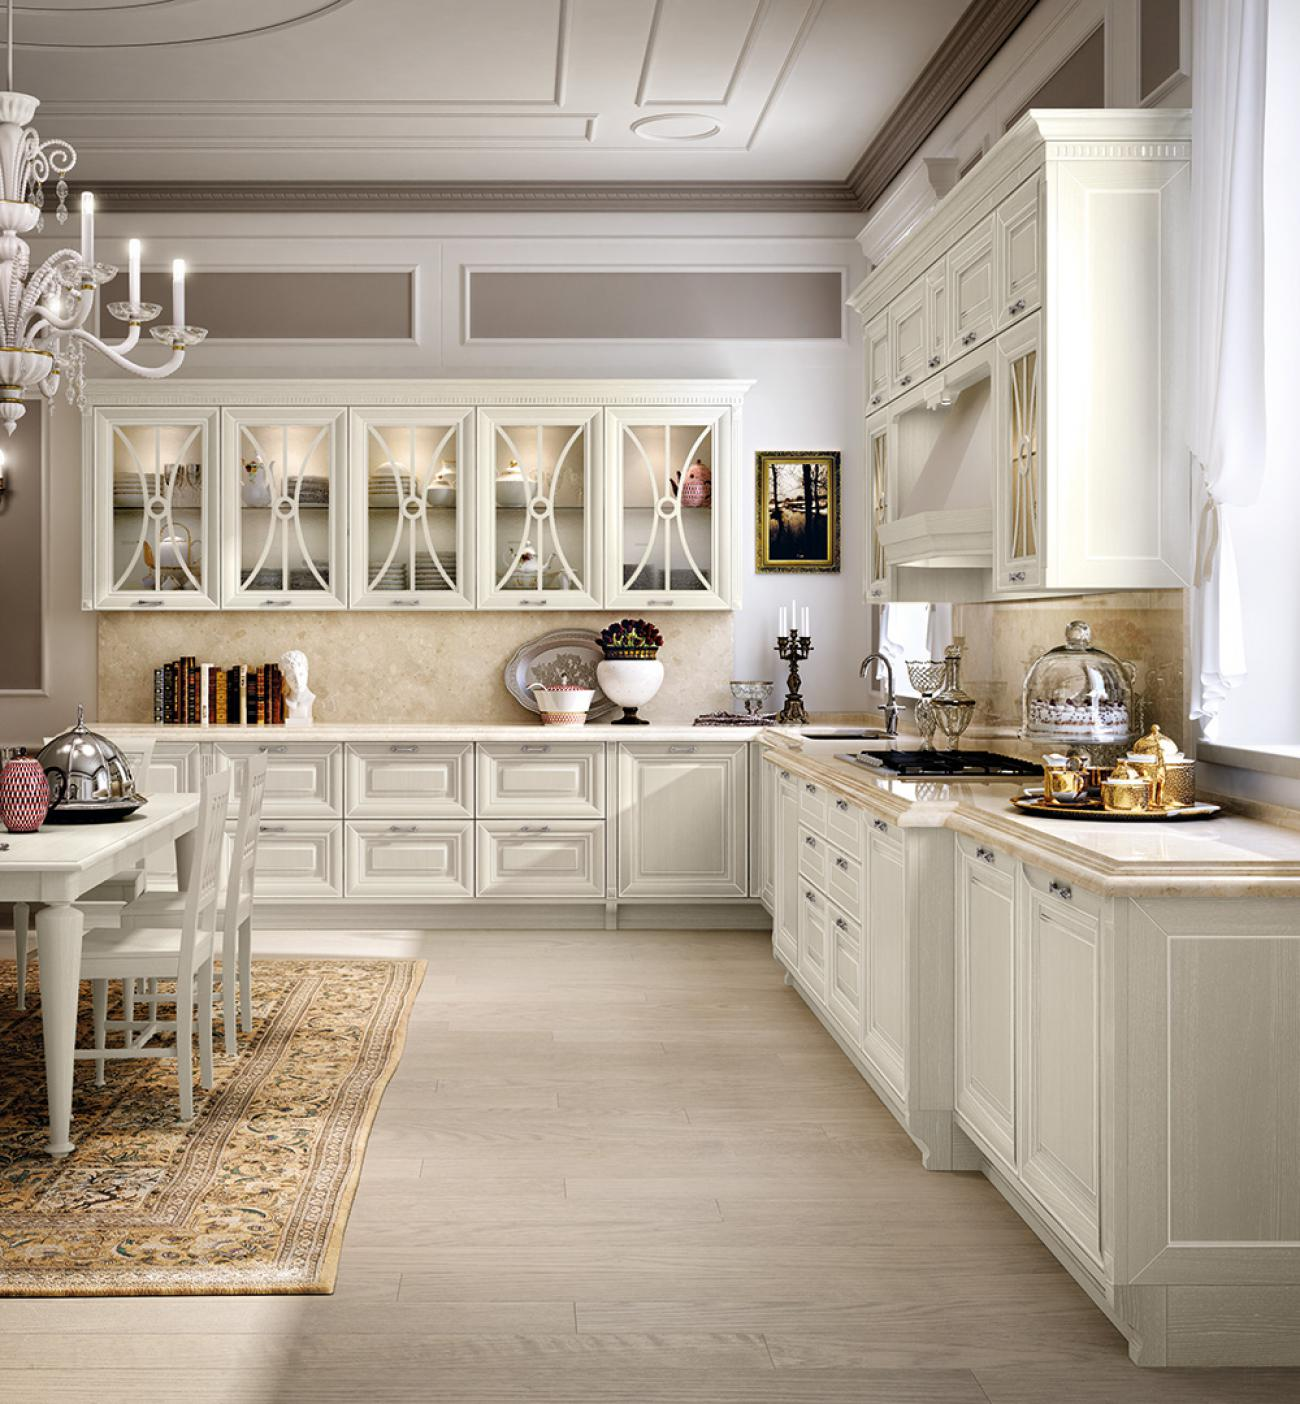 Classic Kitchens - Pantheon - 08